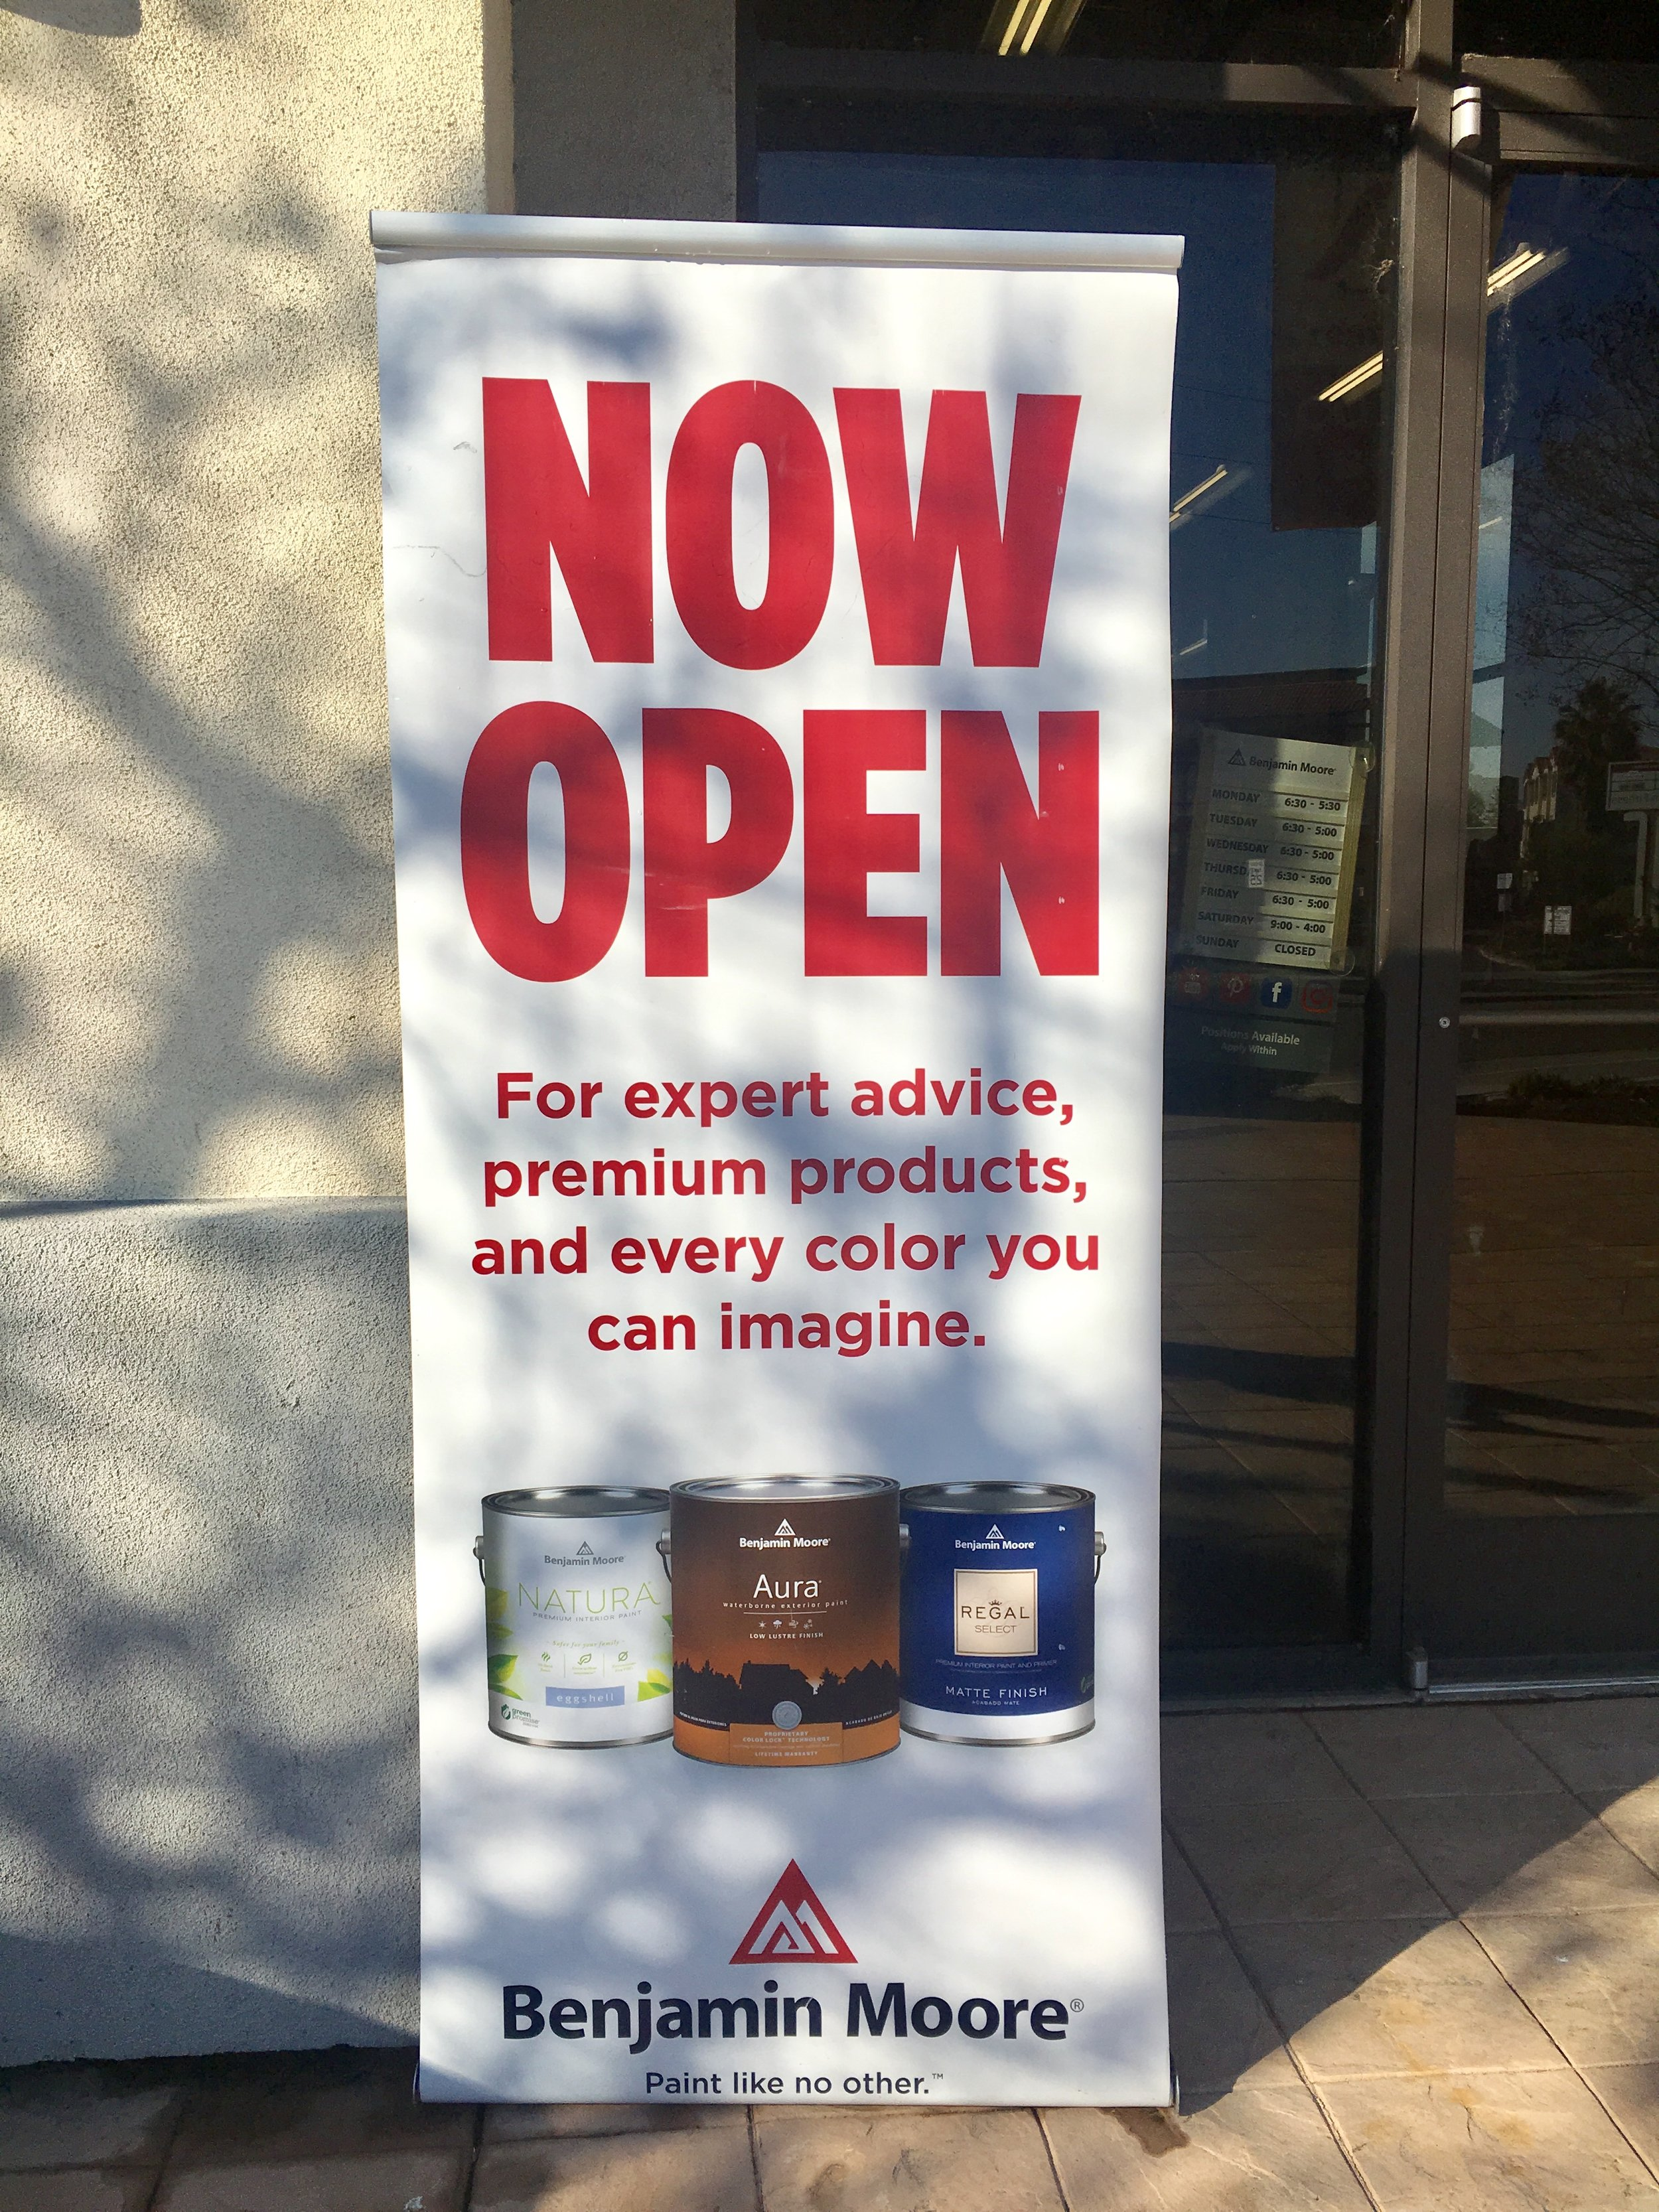 New Livermore Location - 900 Blue Bell DriveLivermore CA, 94551(925) 453-6070Come visit us at our new location and receive *20% off your first order!Mention promo code - IGNSL20*Excludes Power ToolsExpires 1/31/2019